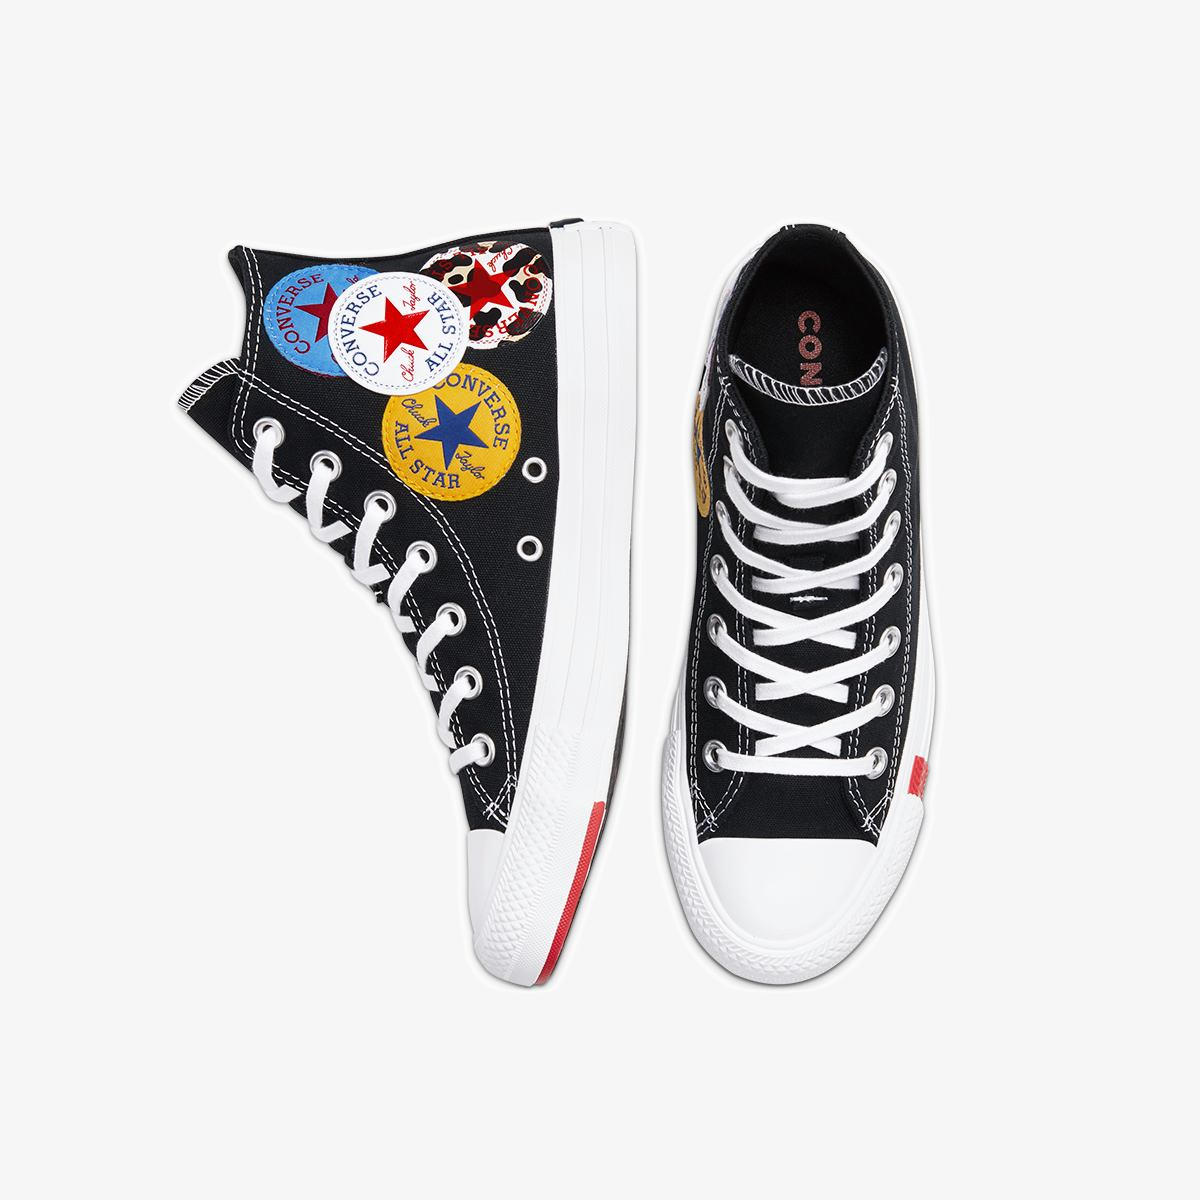 Кеды CONVERSE CTAS HI BLACK/UNIVERSITY RED/AMARILLO 166734C фото